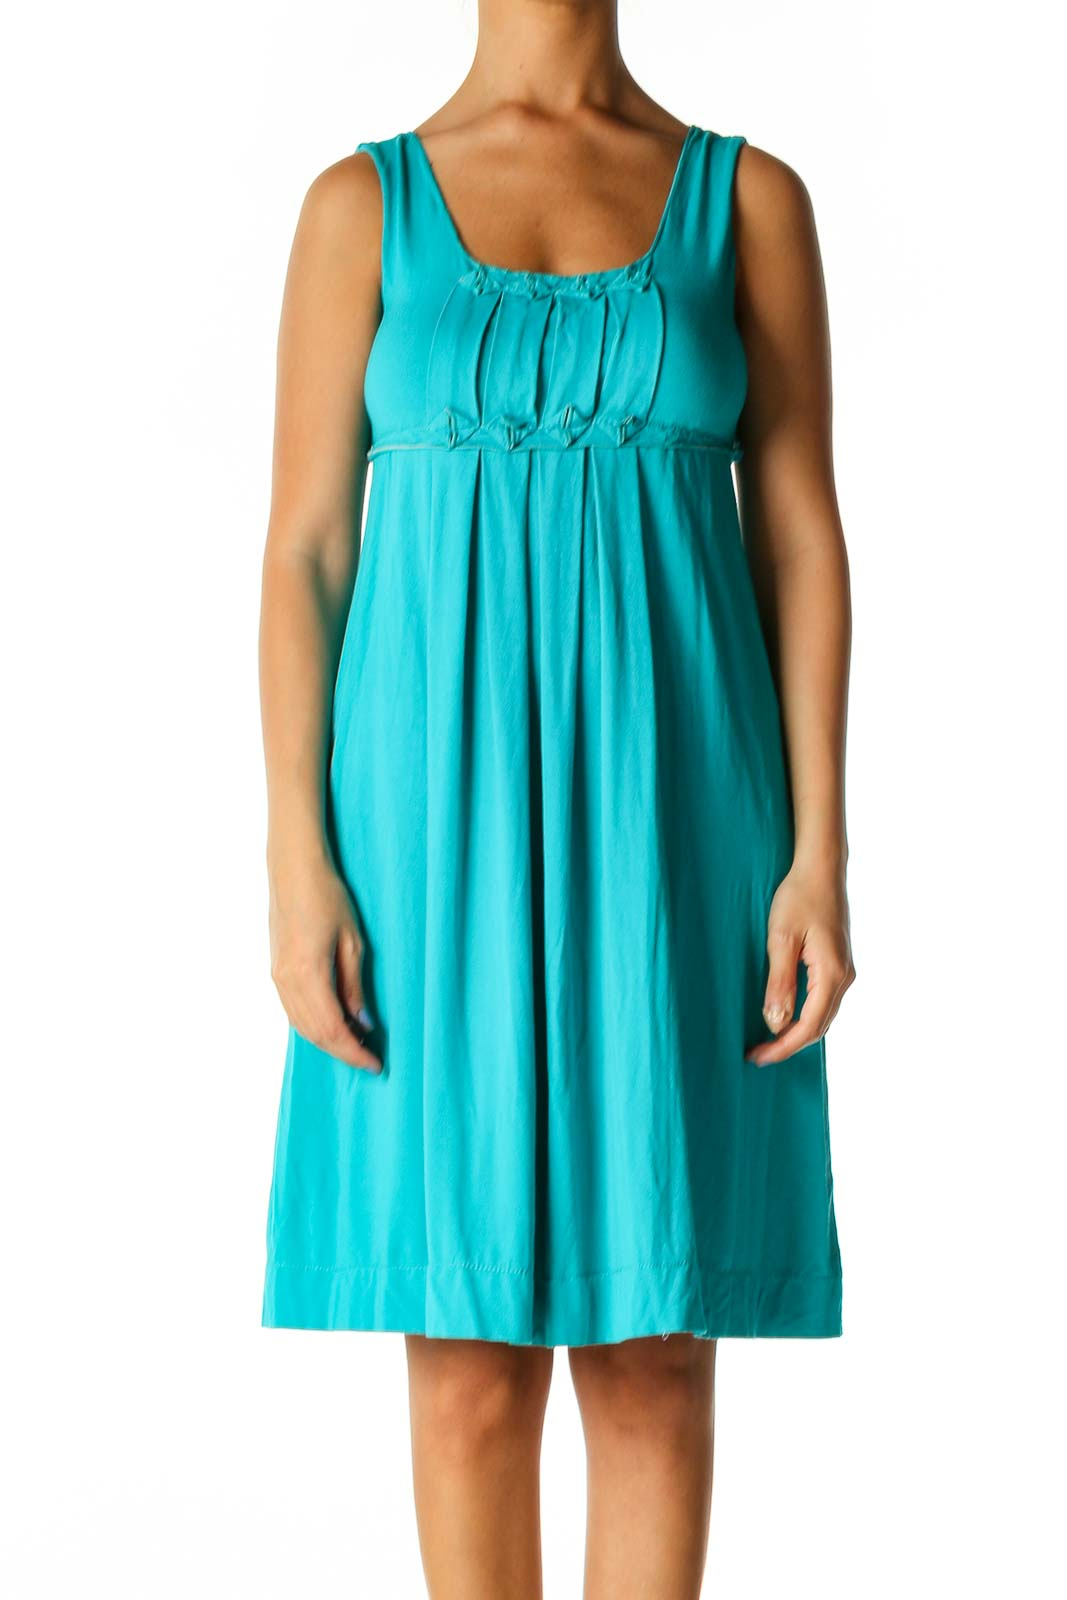 Blue Solid Casual A-Line Dress Front